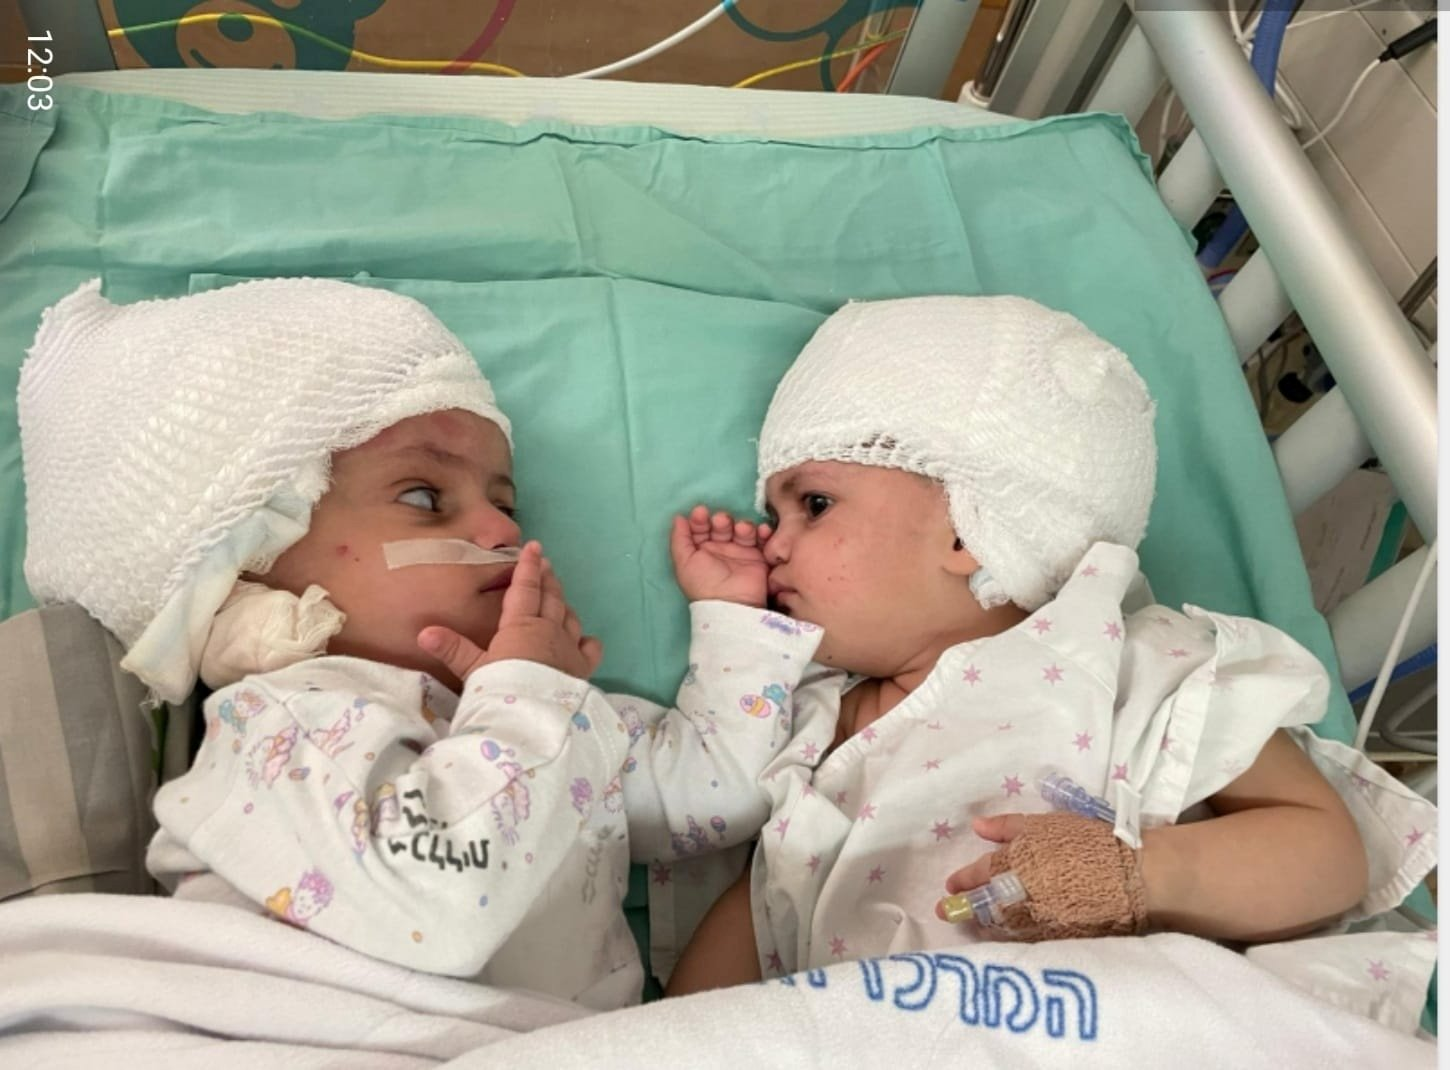 Separated conjoined year-old twins see each other for the first time